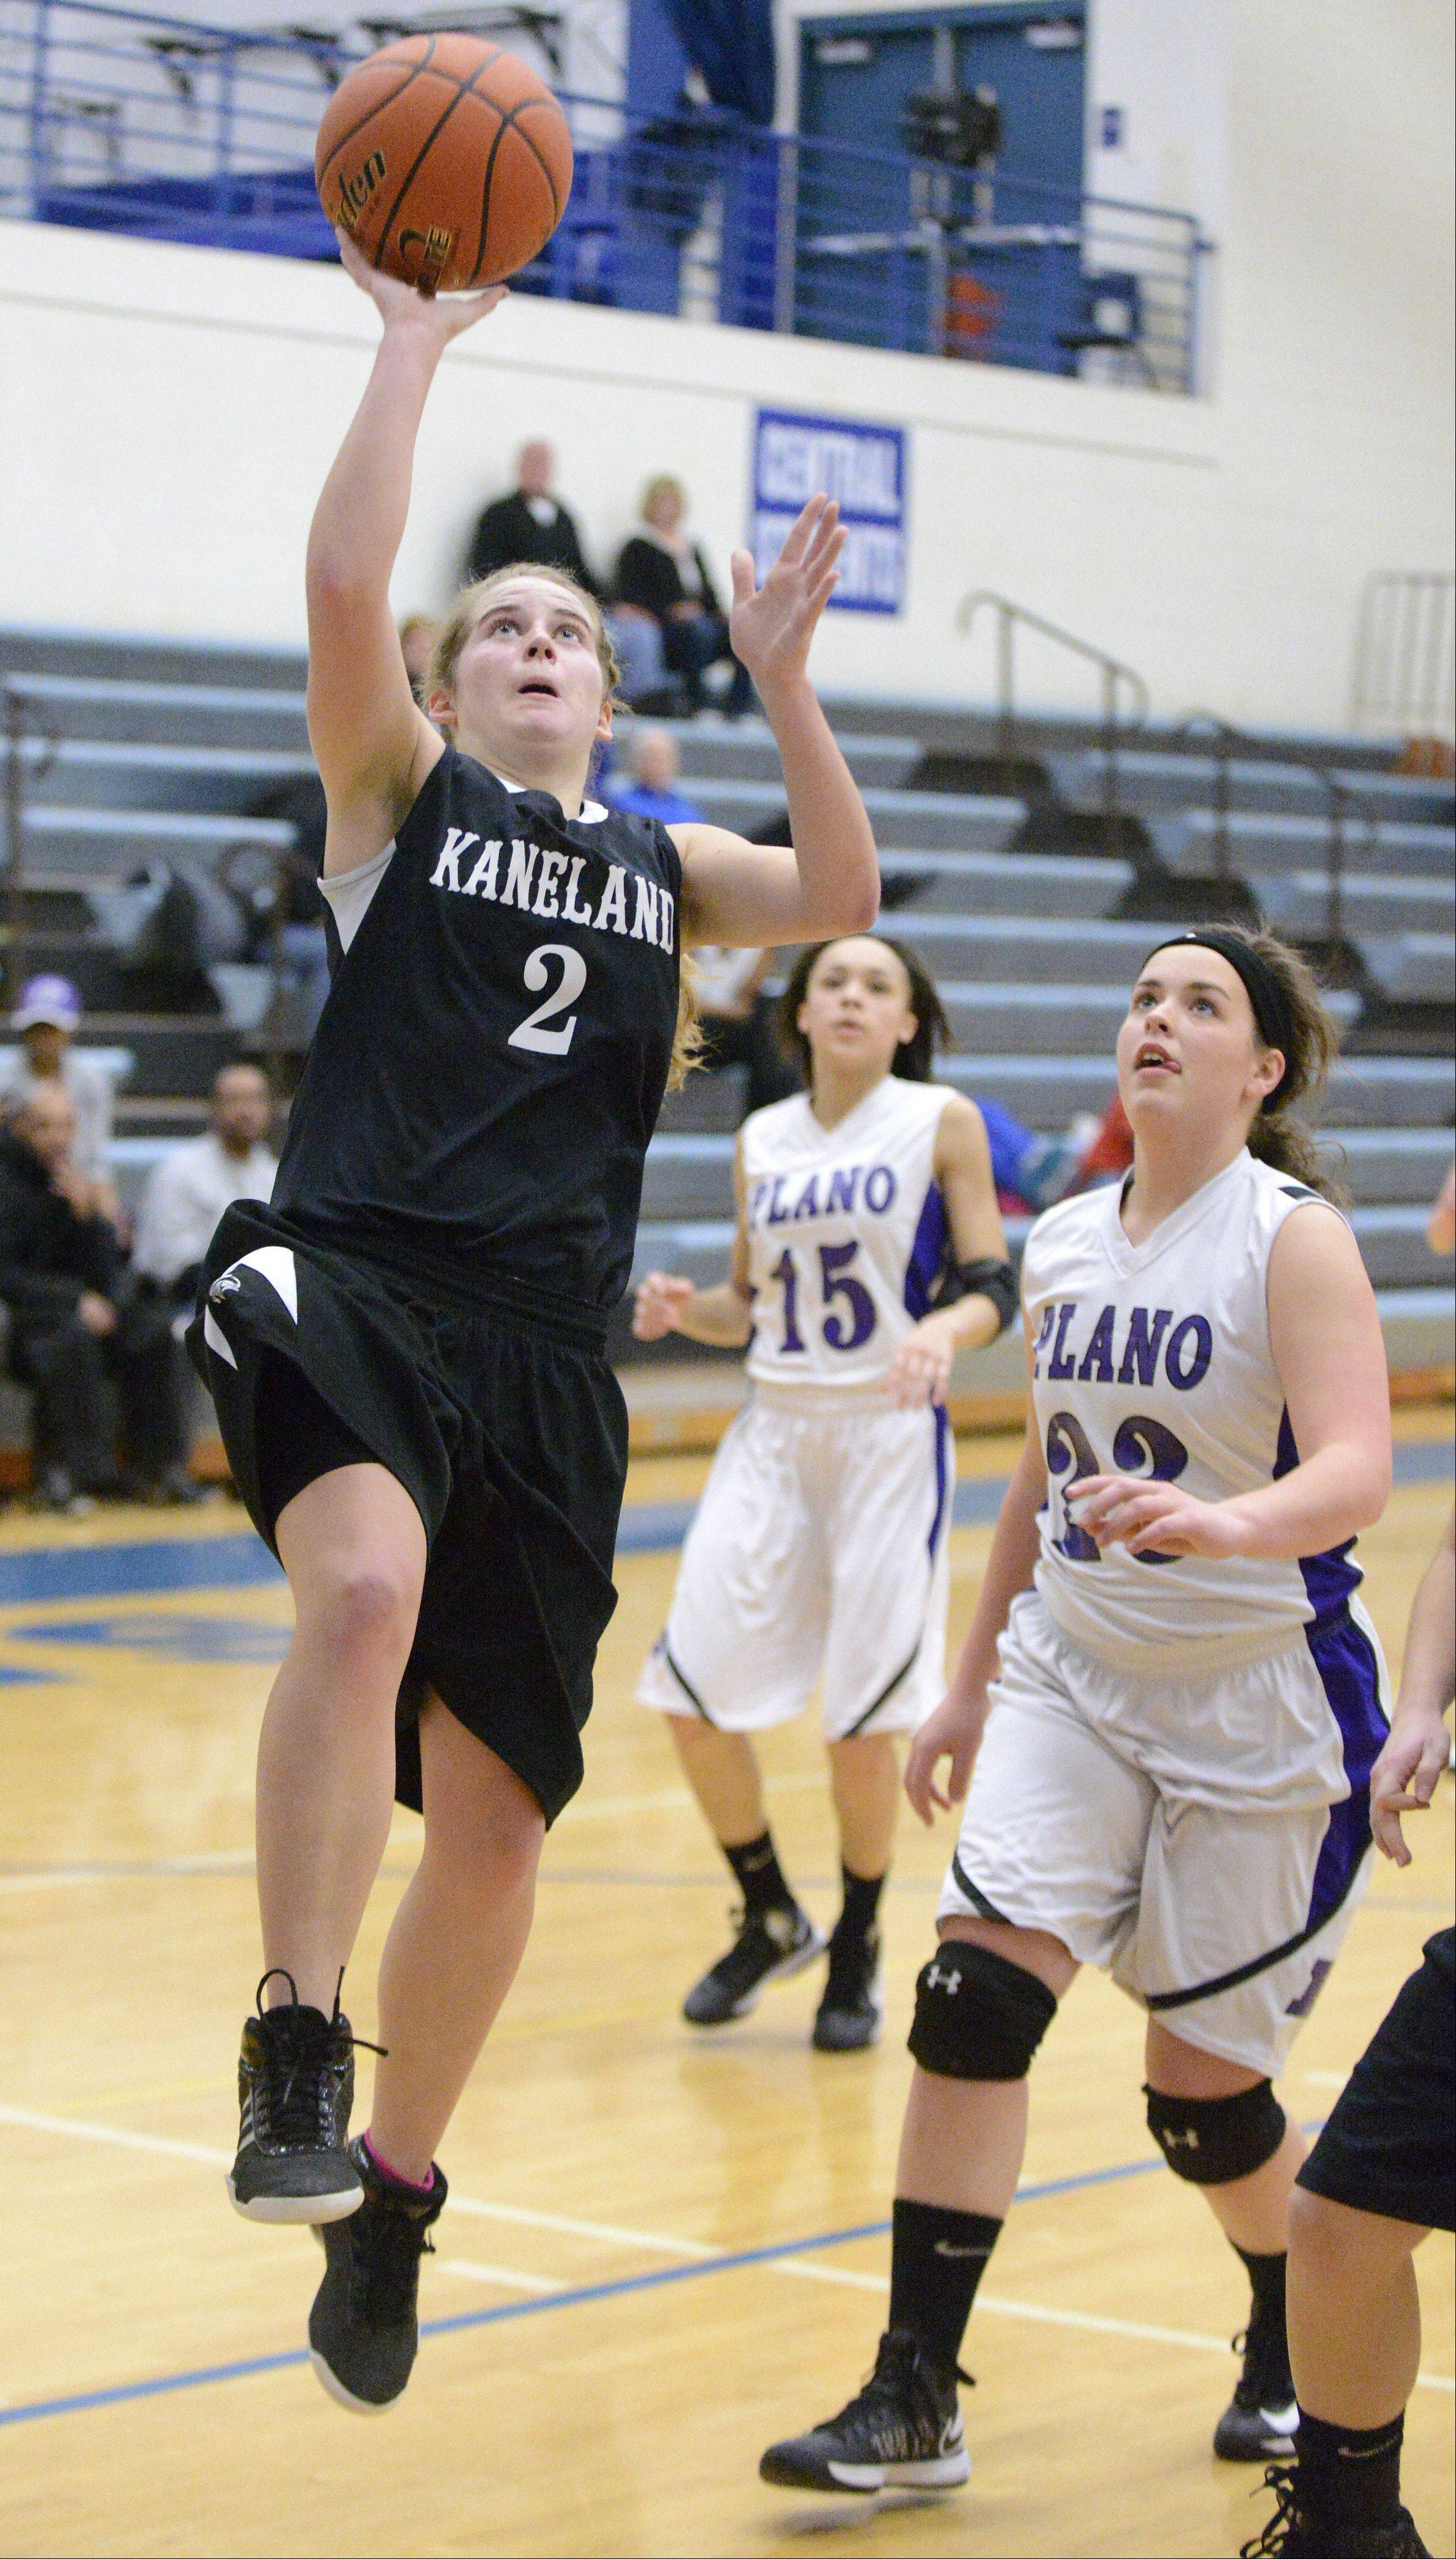 Kaneland's Sarah Grams sinks a shot past Plano's Clarisa Martinez in the fourth quarter of the Class 3A regional game on Wednesday, February 13.